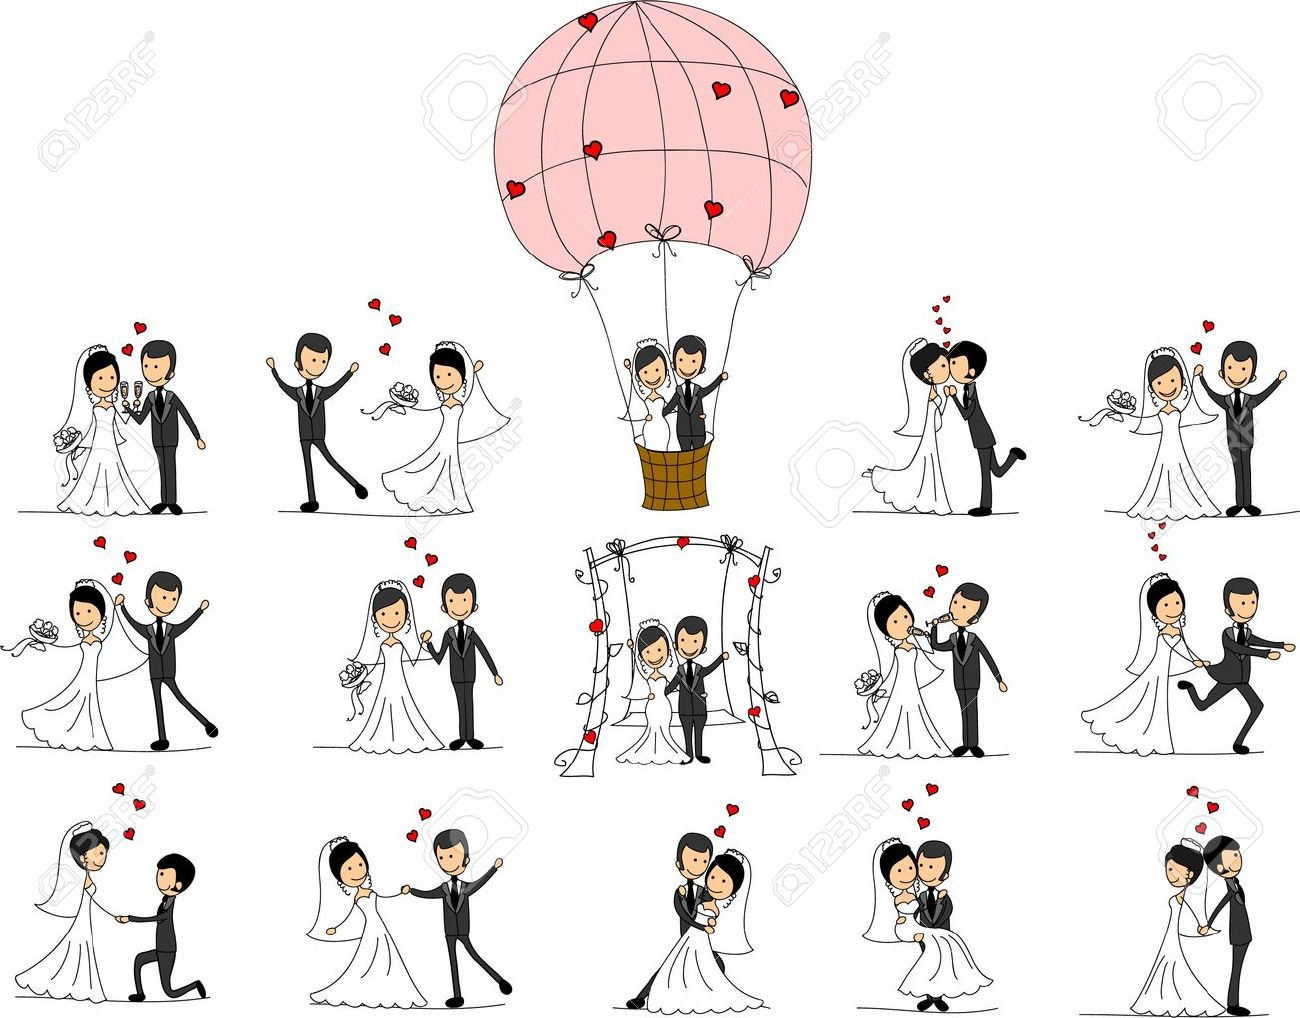 Wedding pictures, love the bride and groom - 11498992